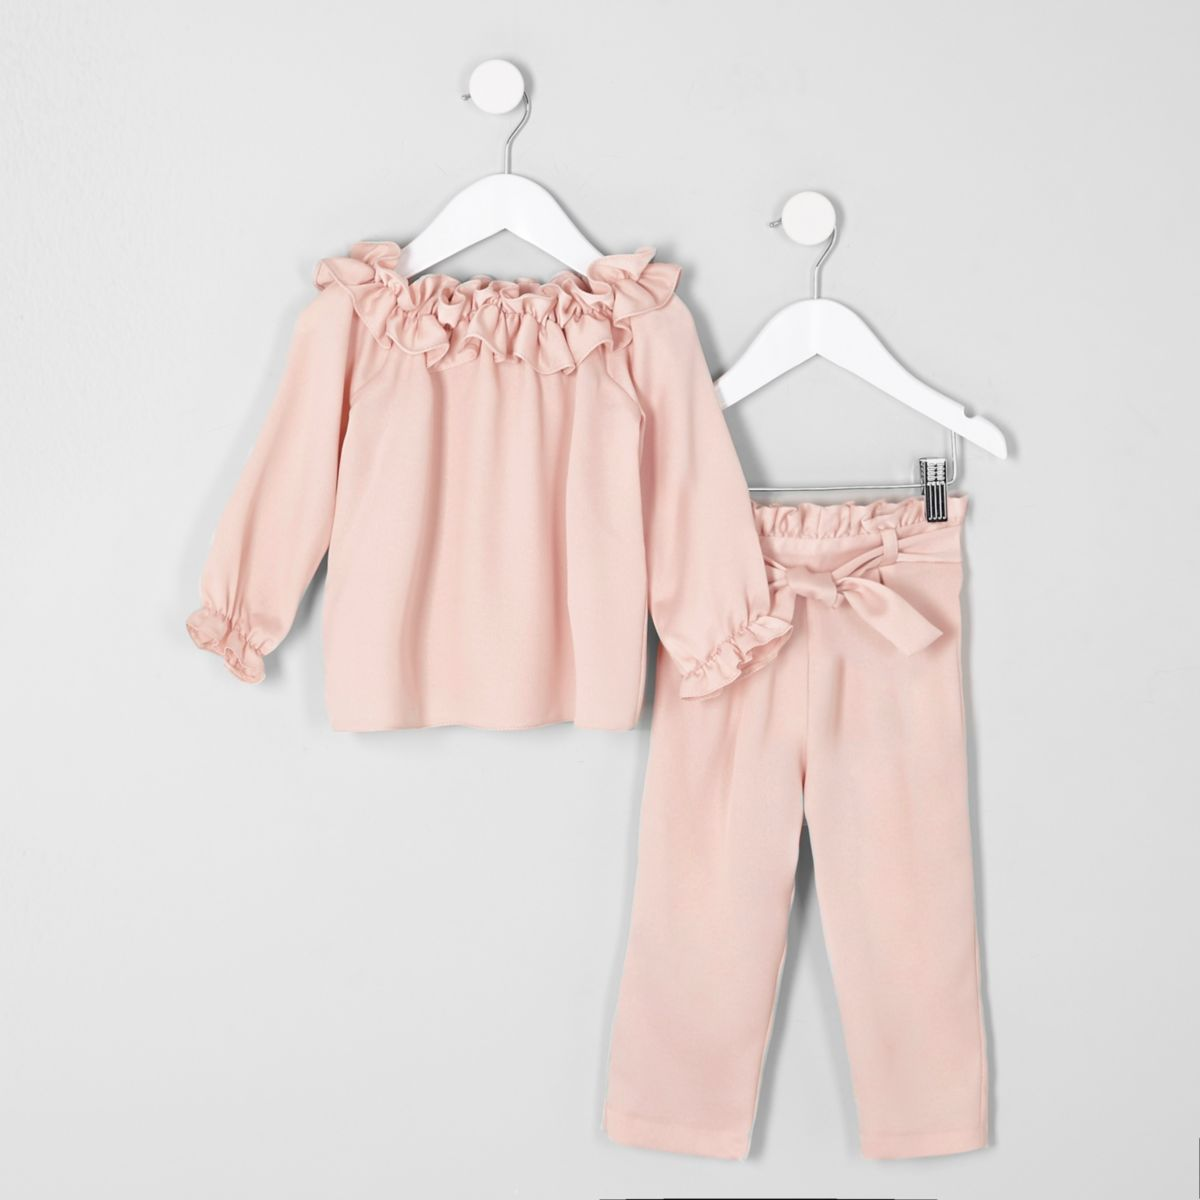 Mini girls pink bardot top and pant outfit